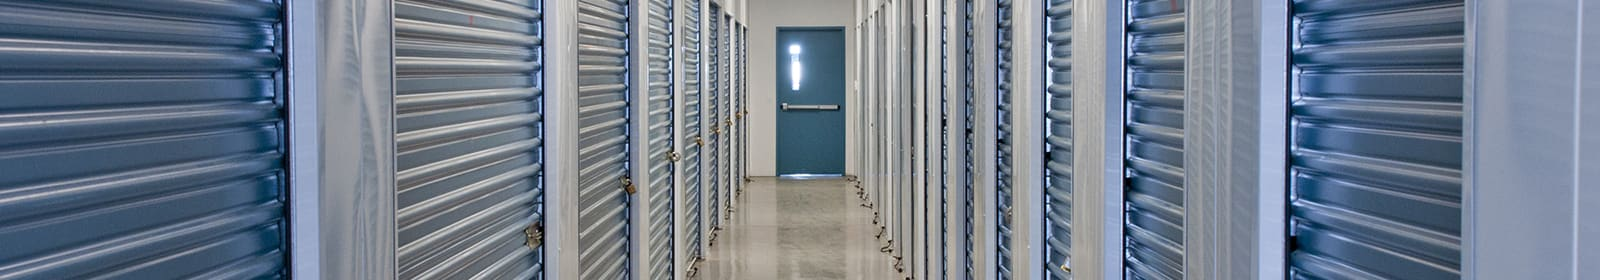 Lakeville Dodd Storage units and pricing in Lakeville, MN.